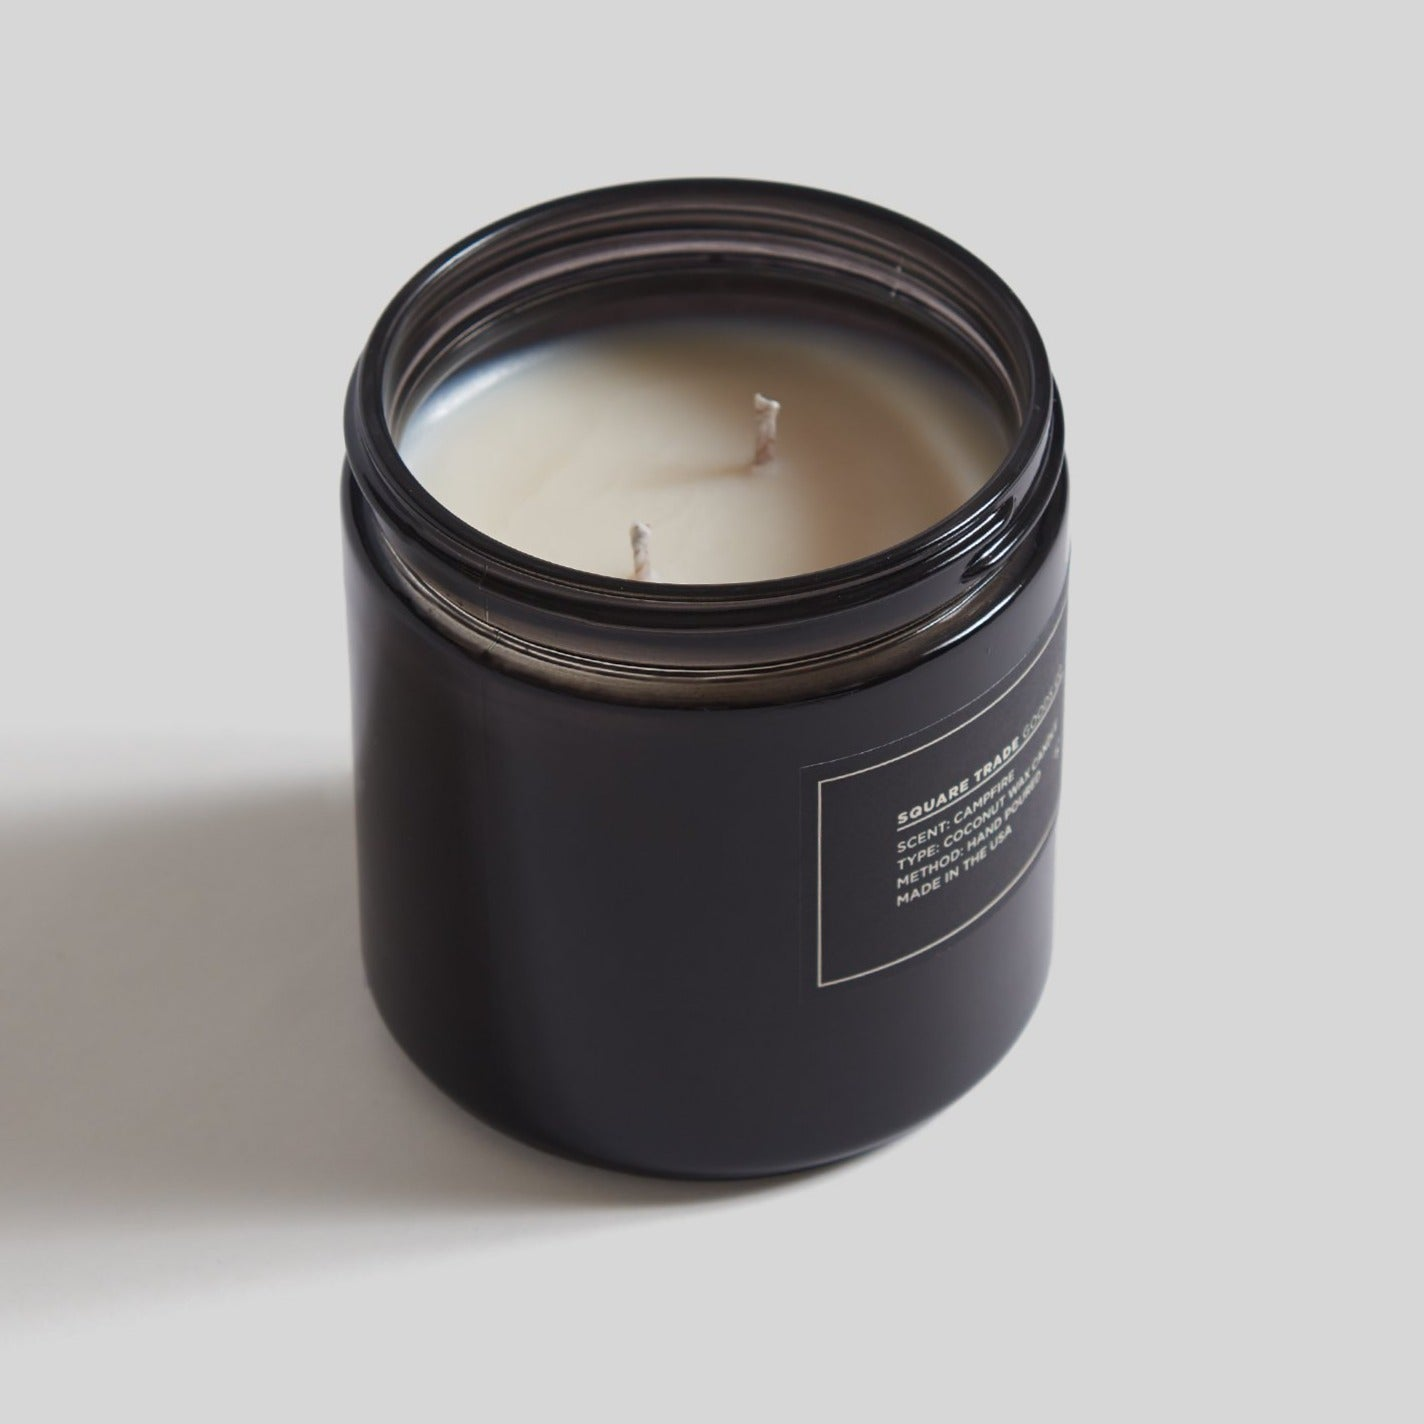 Square Trade Goods 16 oz Candle - Campfire